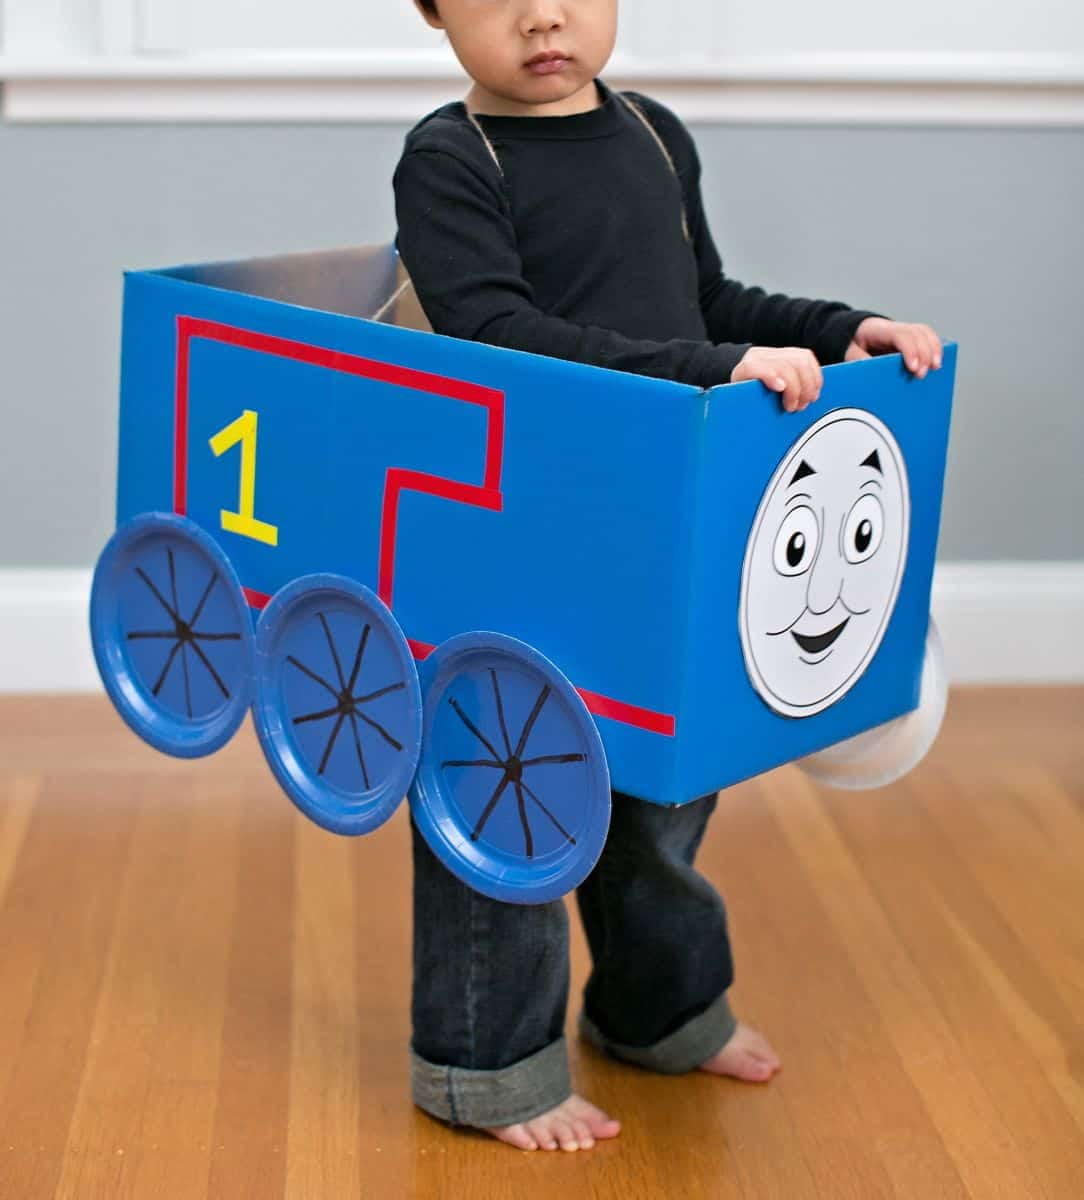 thomas the tank engine face template - thomas and friends costumes 5 printable faces